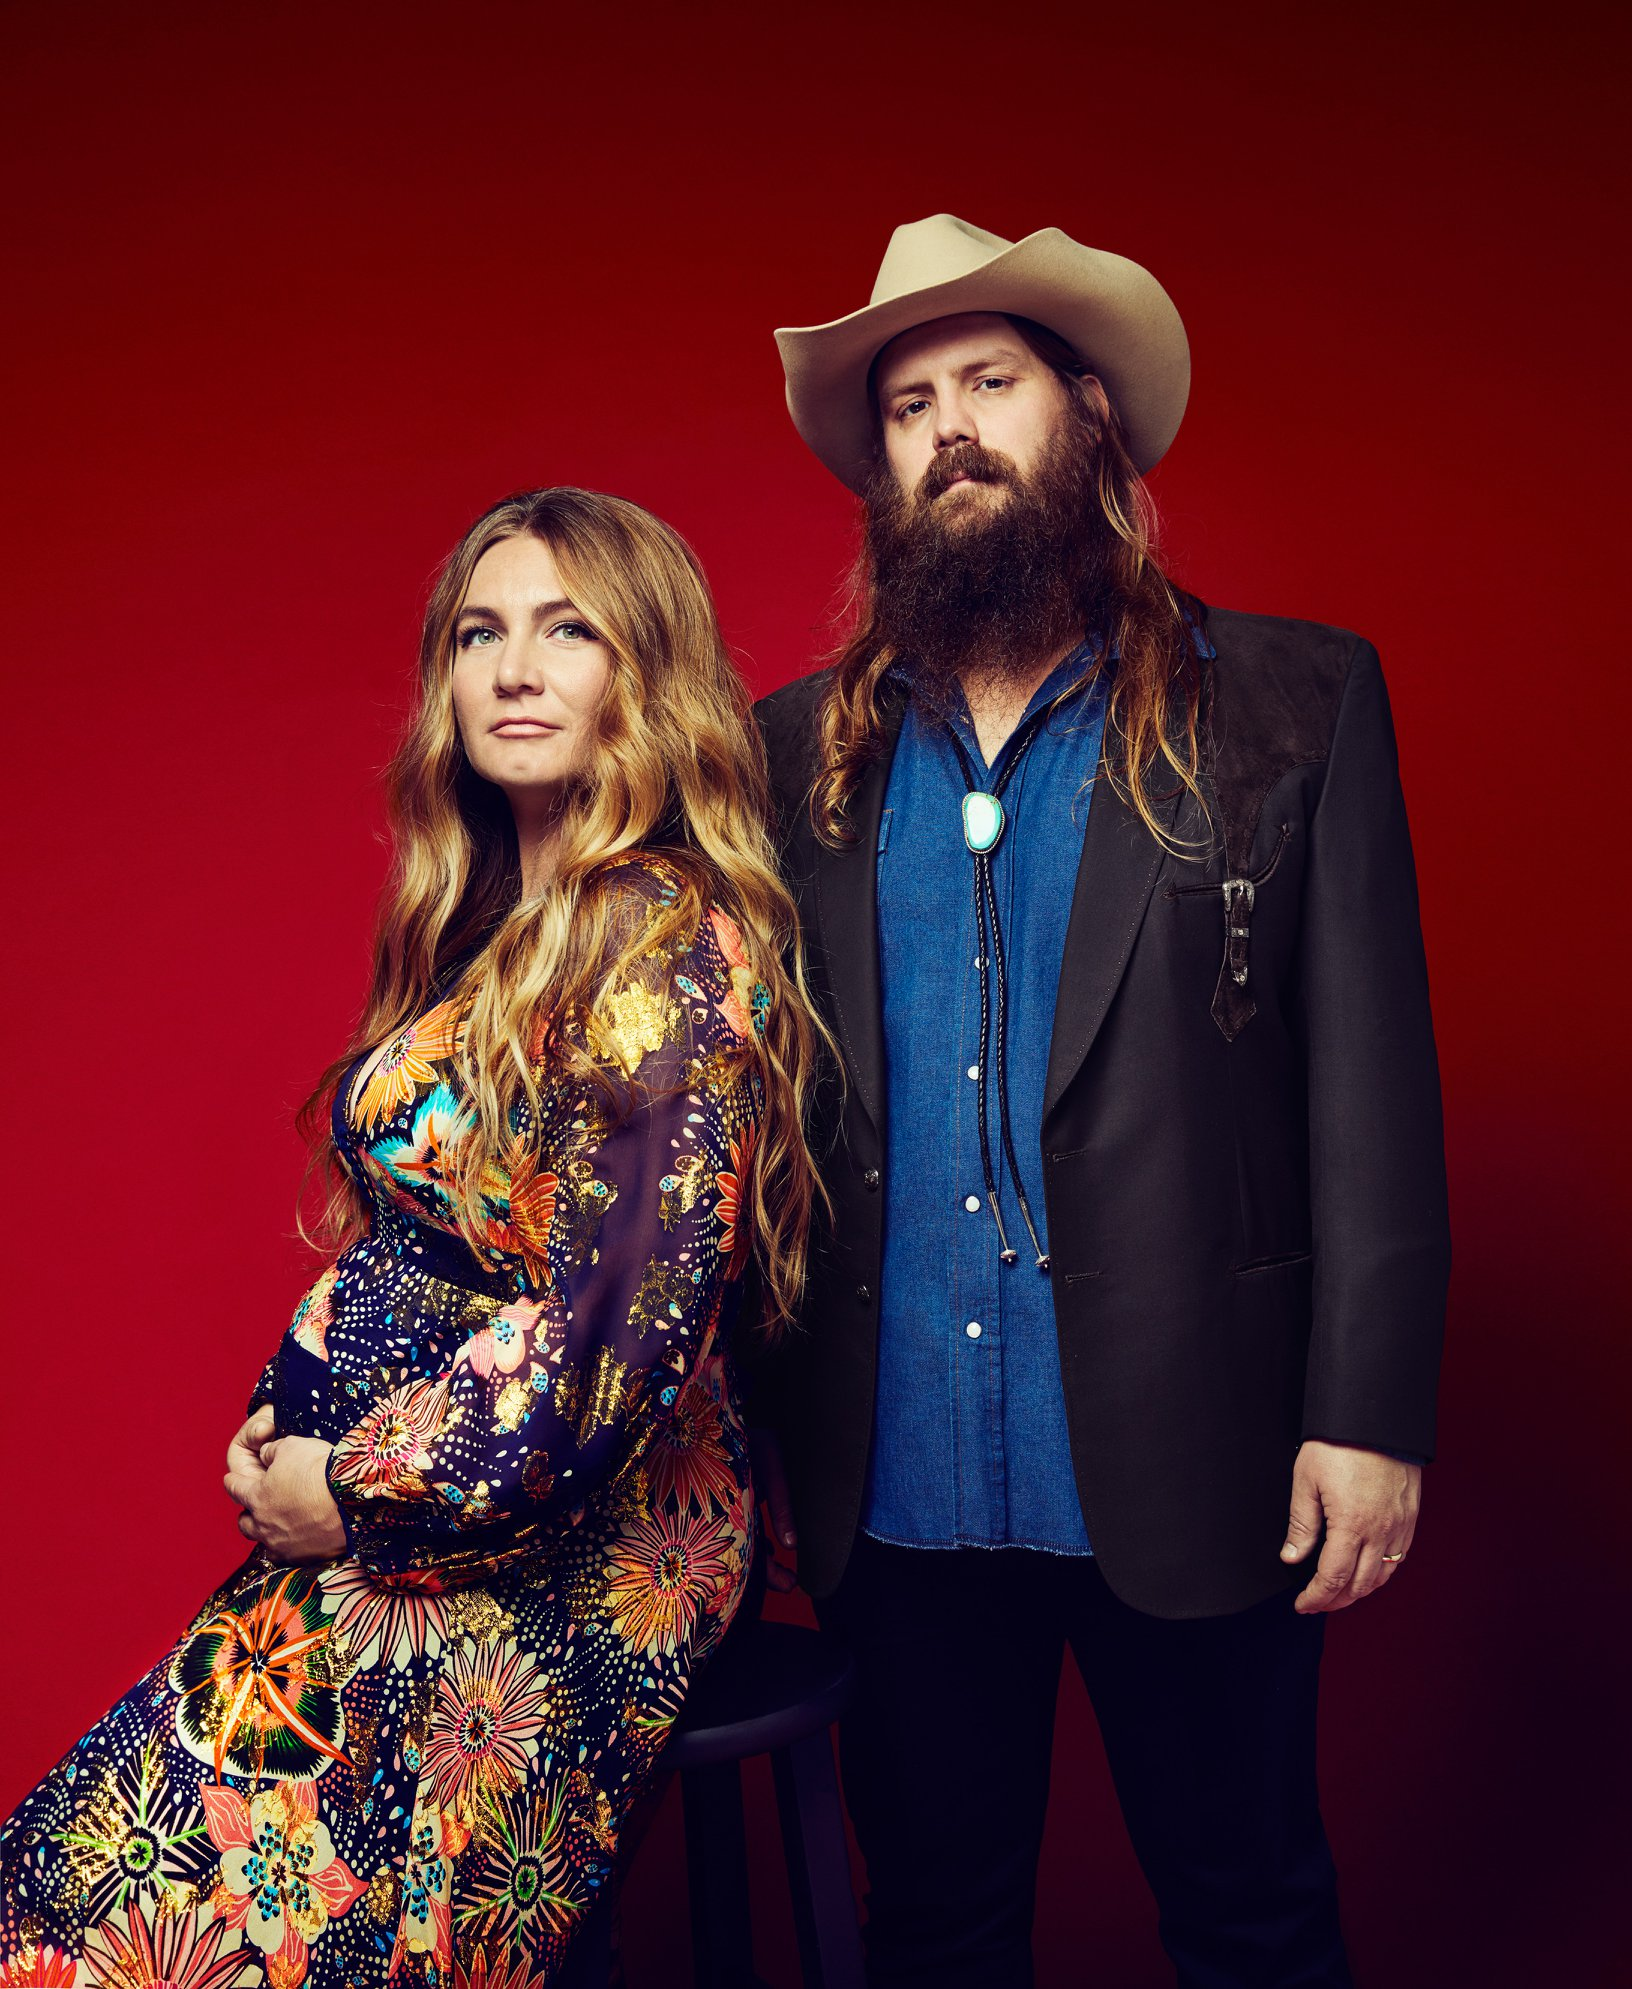 Chris Stapleton's Wife, Morgane Brings Light to Her Husband's Music and Life 1